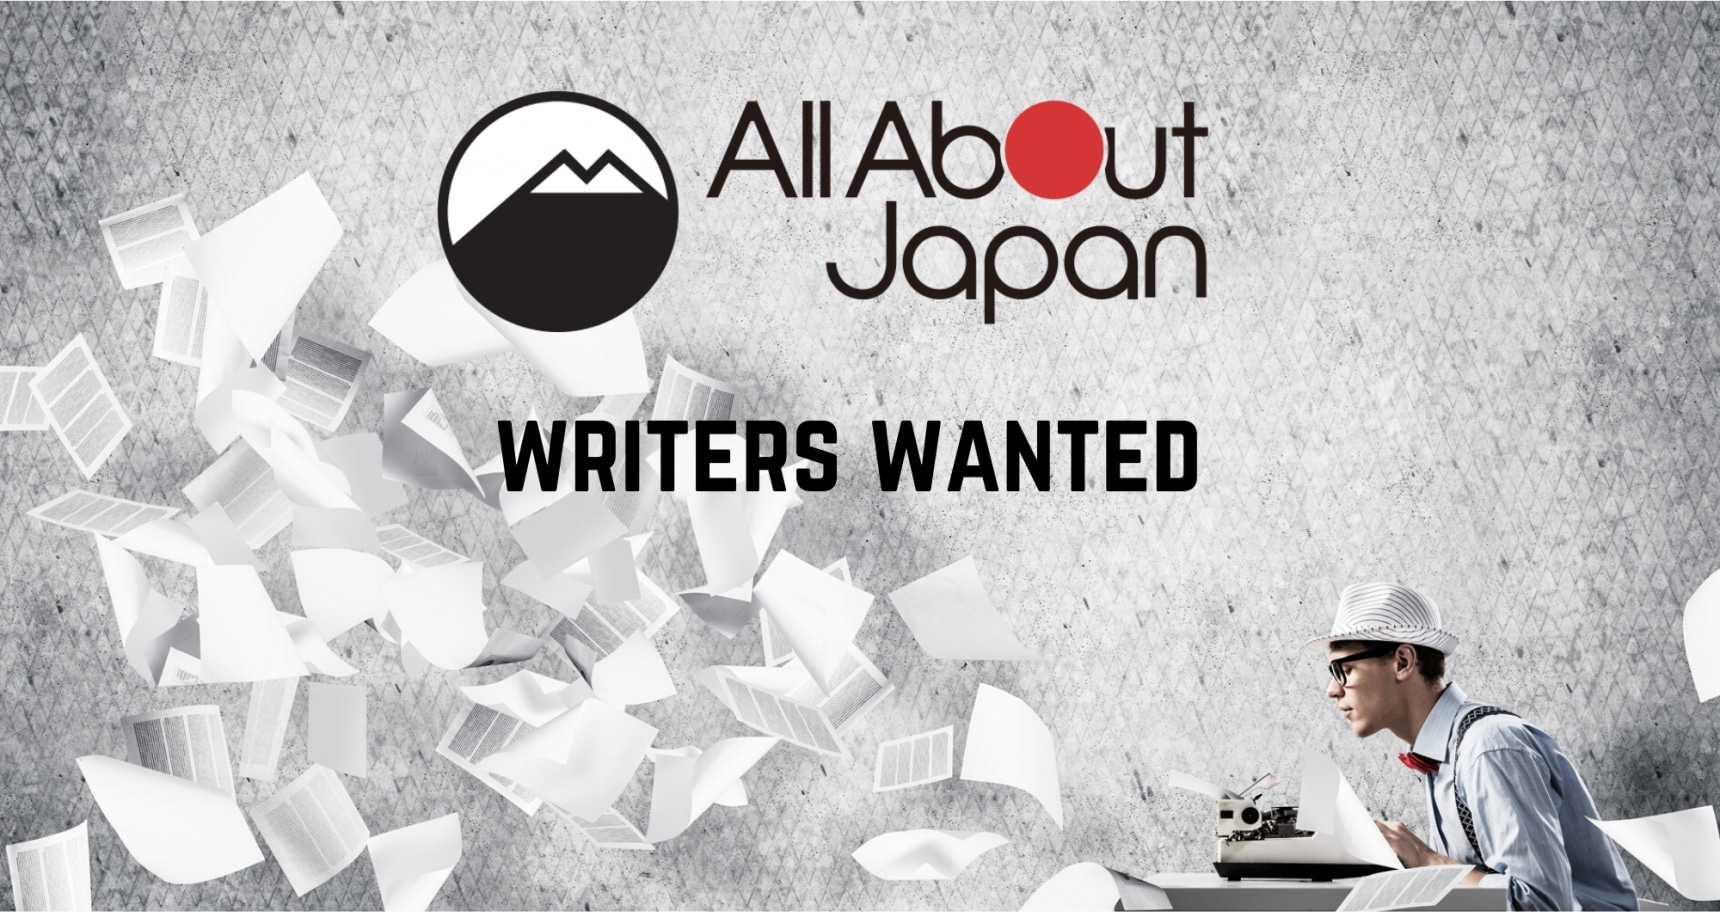 Want to Write for All About Japan?